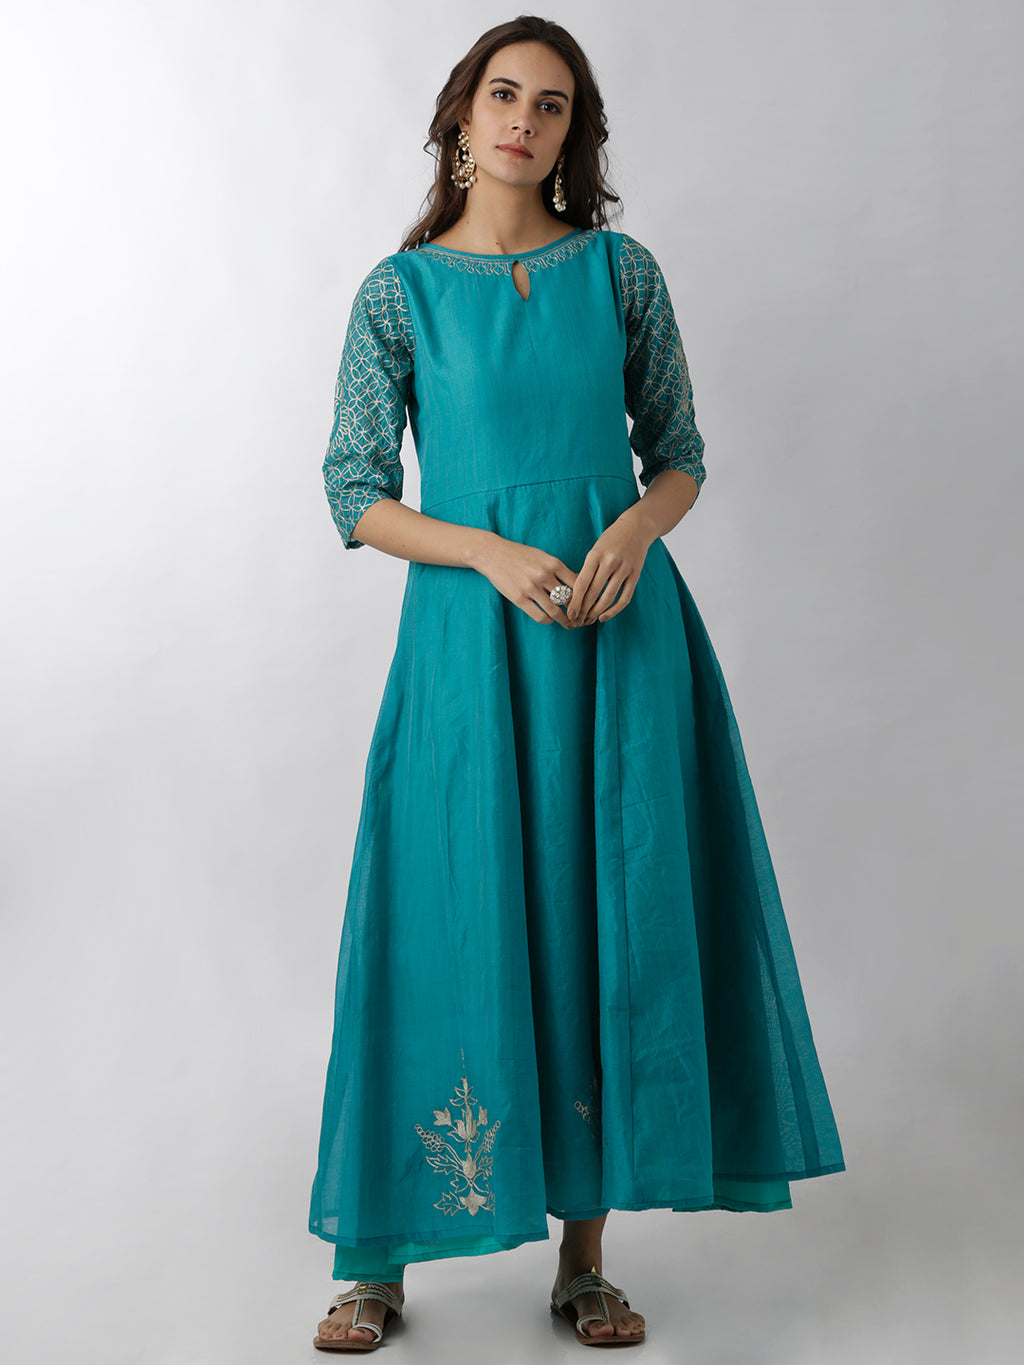 Breya Keyhole Neck Light Blue Embroidered A-Line Kurta